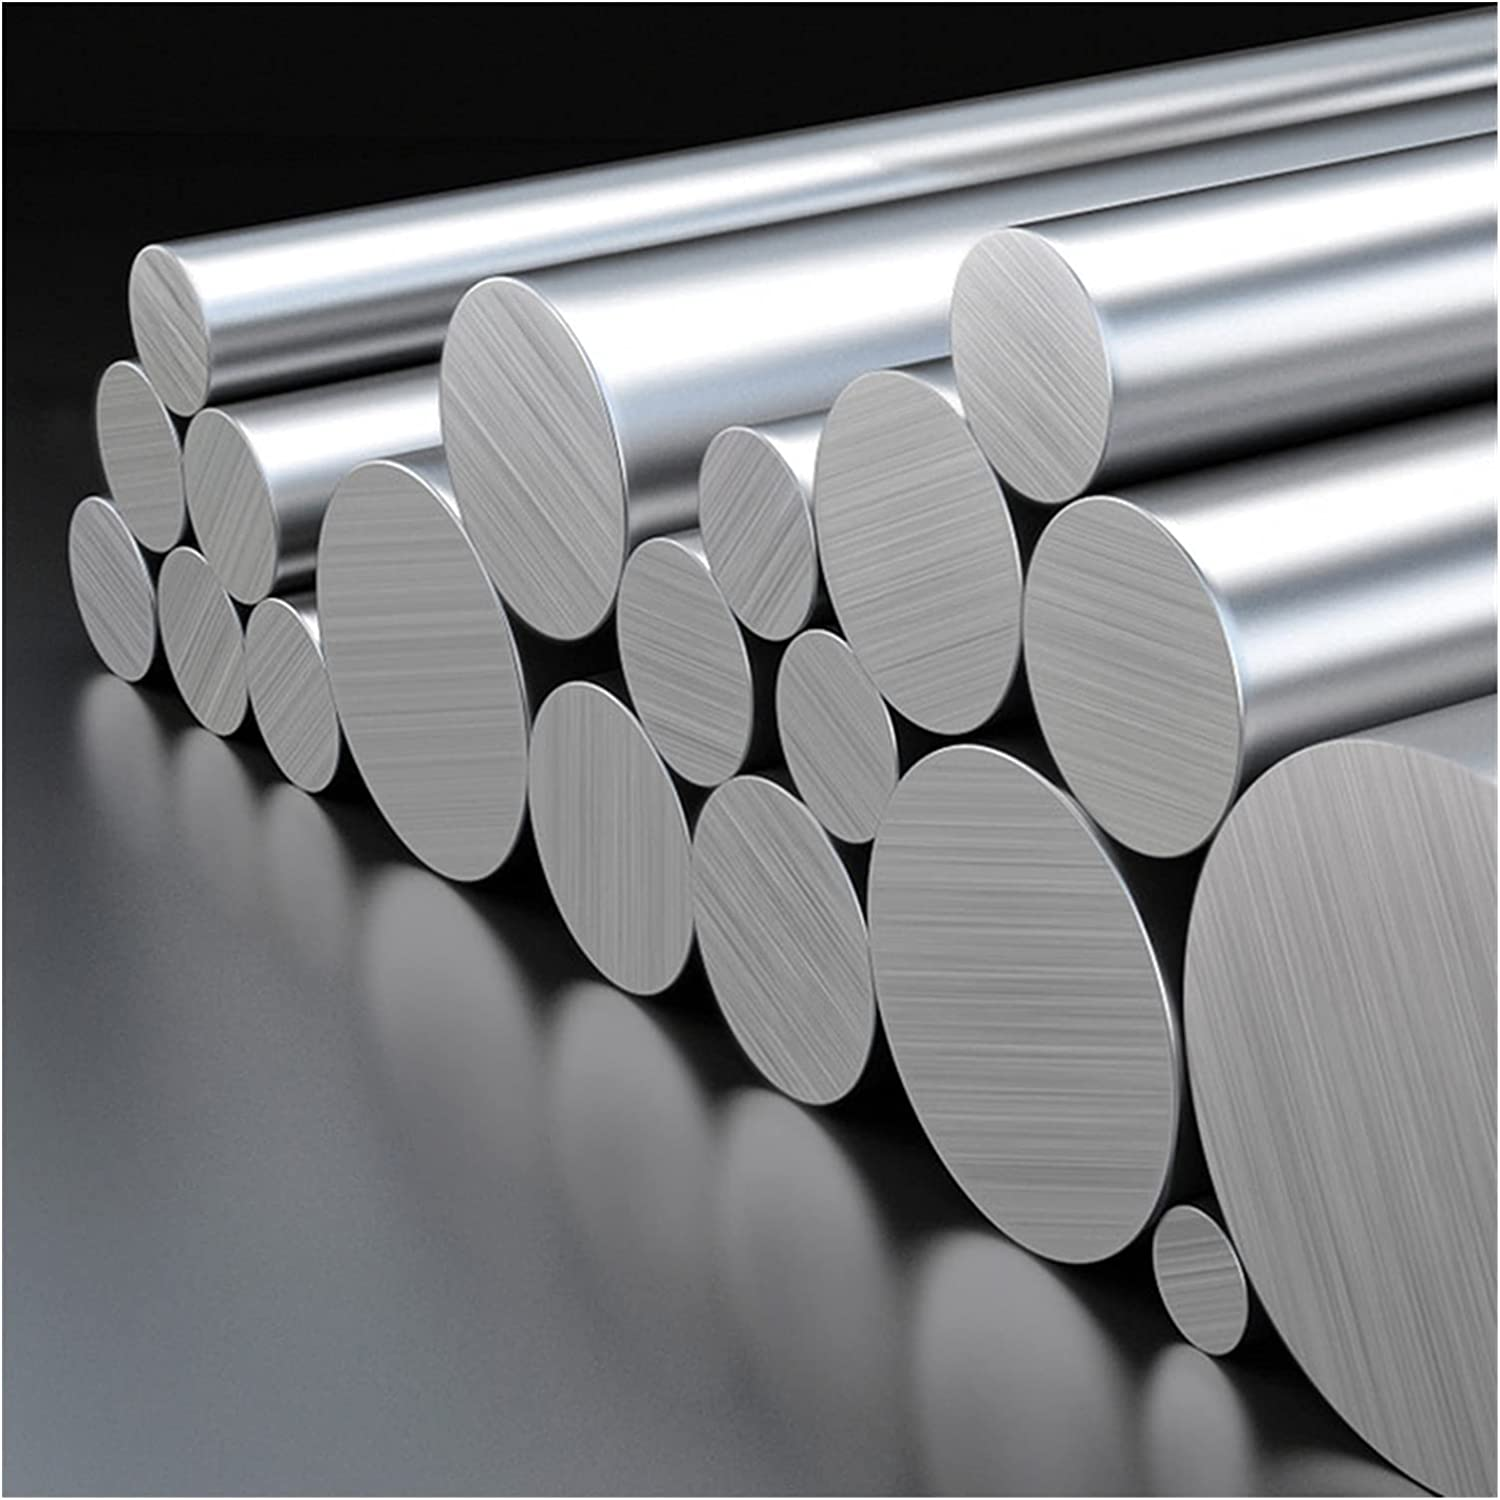 Stainless Steel Rod 3mm 4mm Rail Discount mail order Bar Silver Linear Ground Free Shipping New